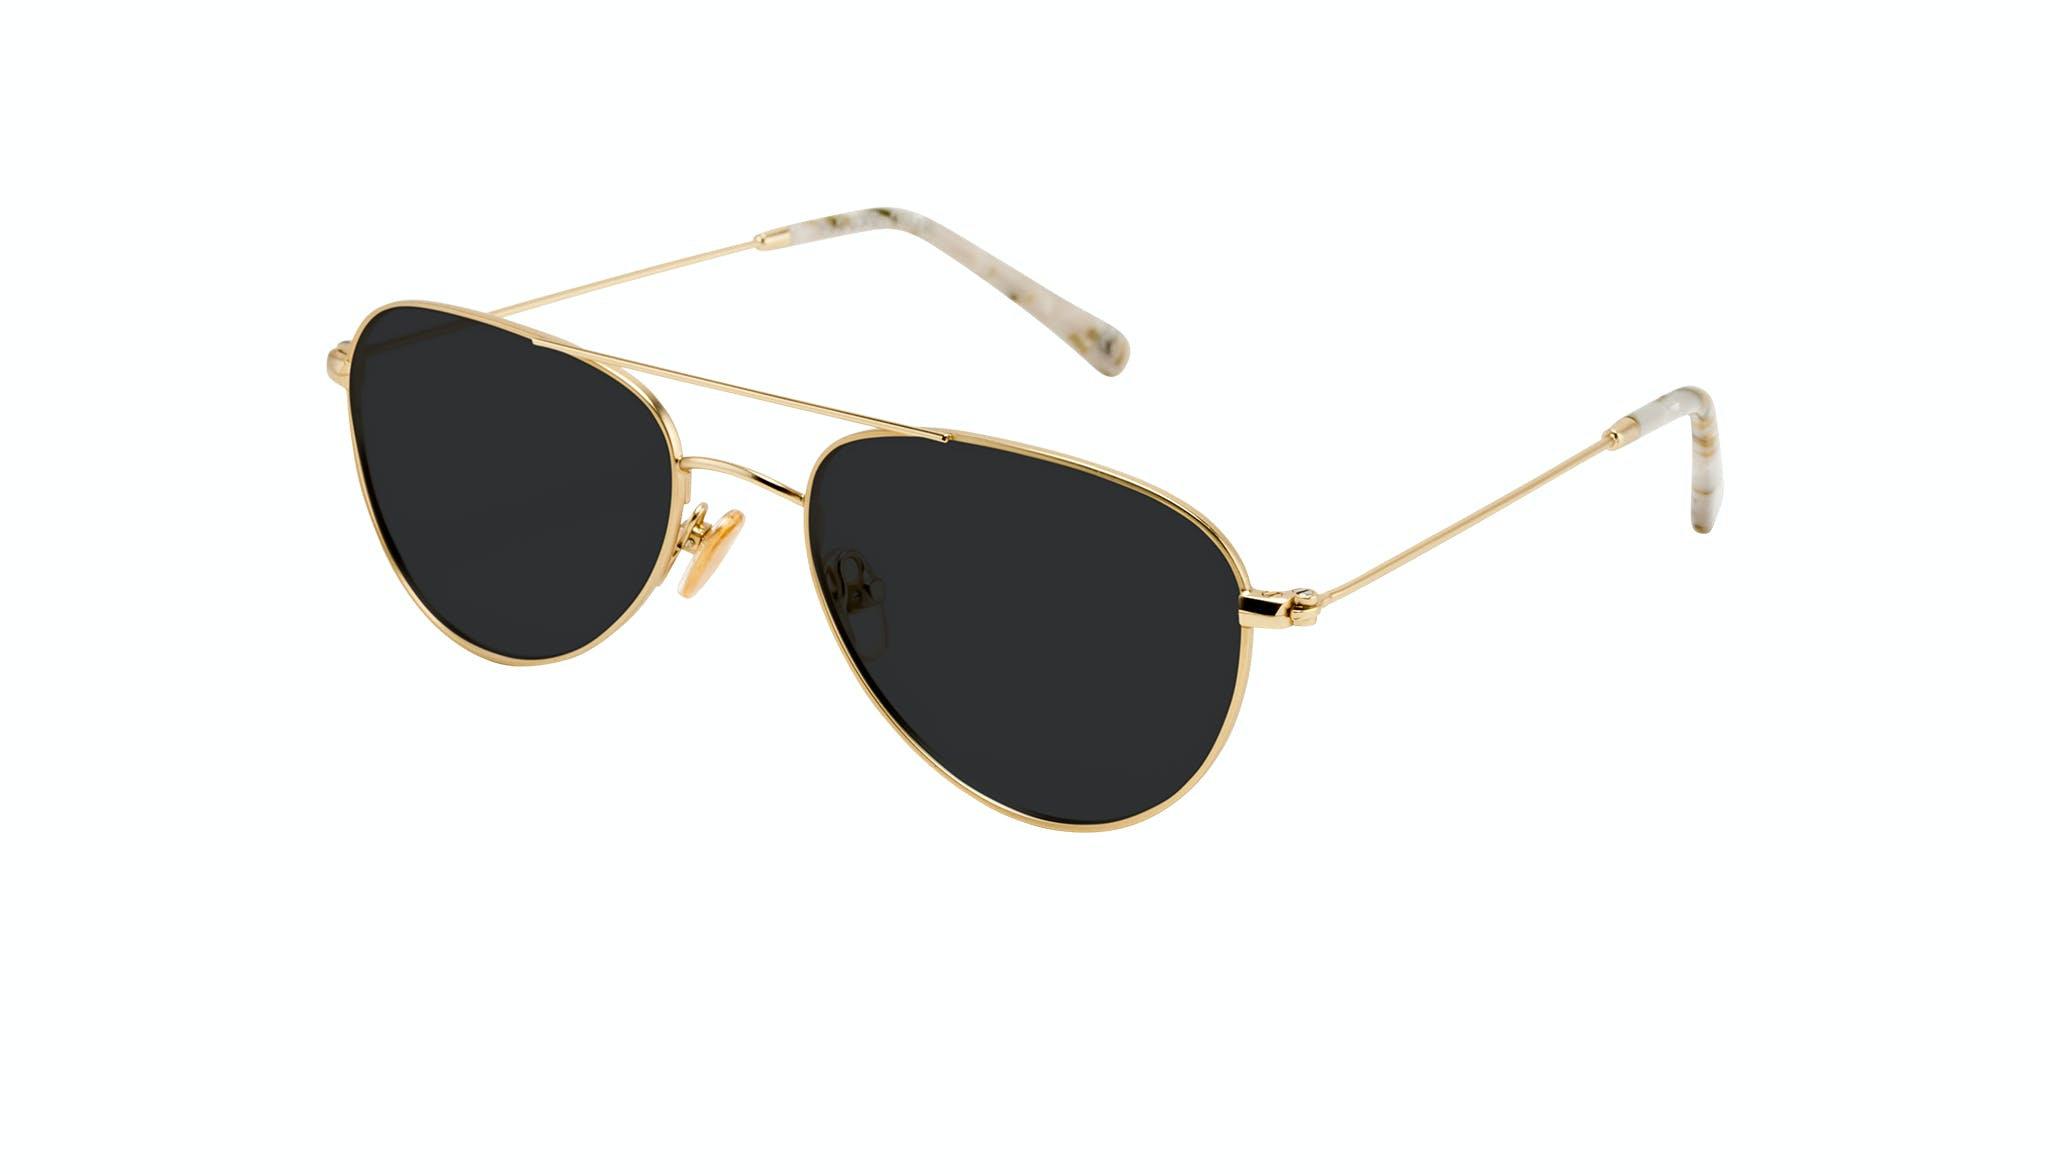 Affordable Fashion Glasses Aviator Sunglasses Women Figure Gold Tilt